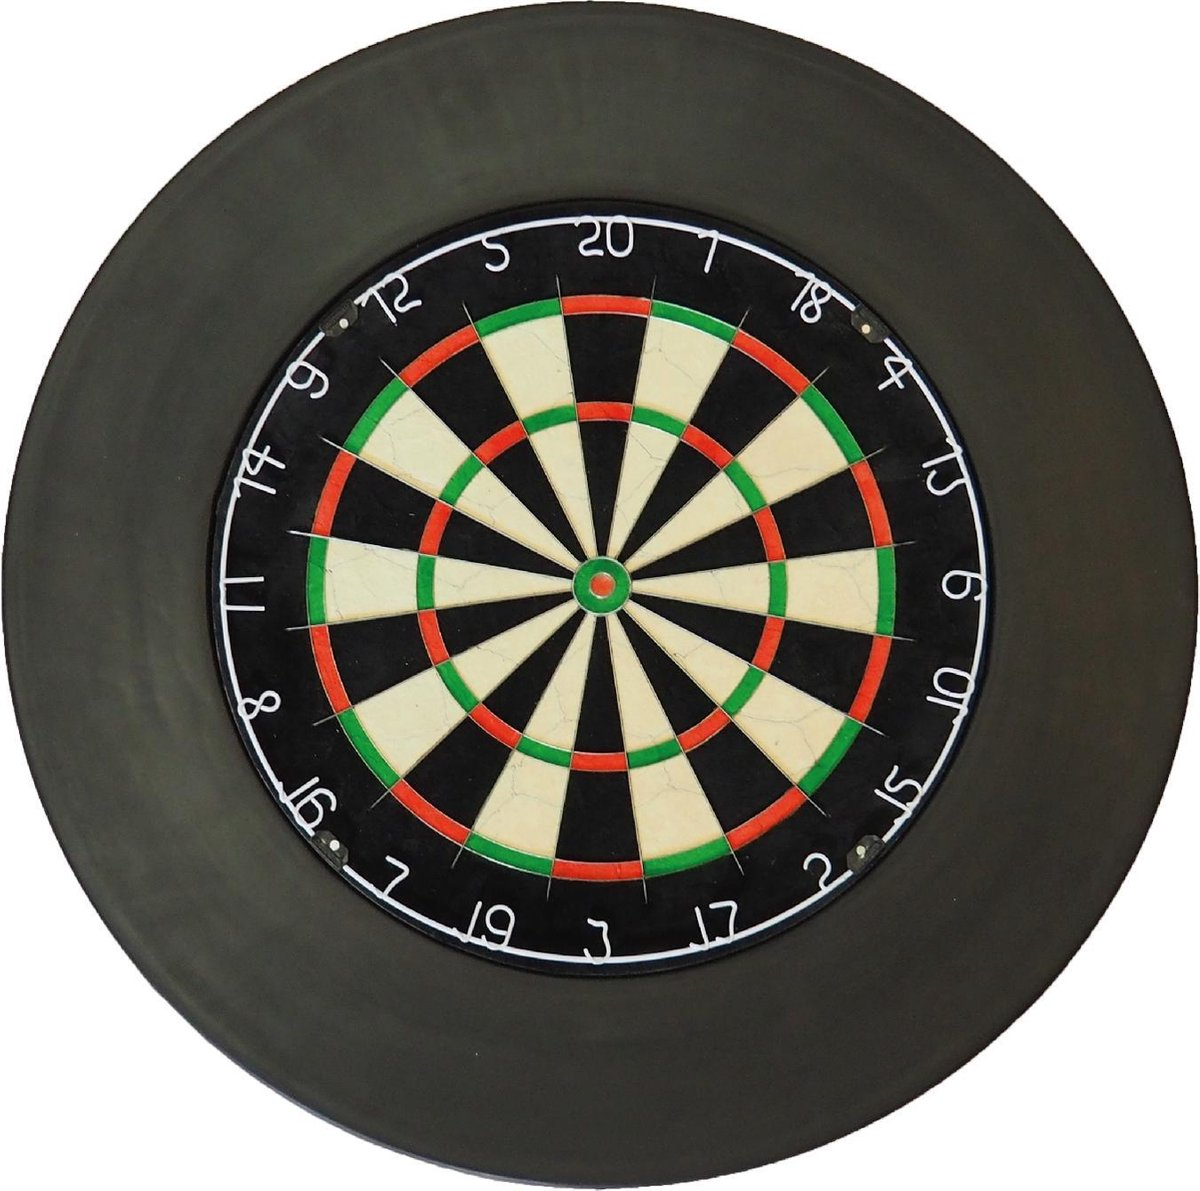 Combideal - A-merk Bristle dartbord - dartbord - plus - dartbord surround ring zwart - Dragon darts